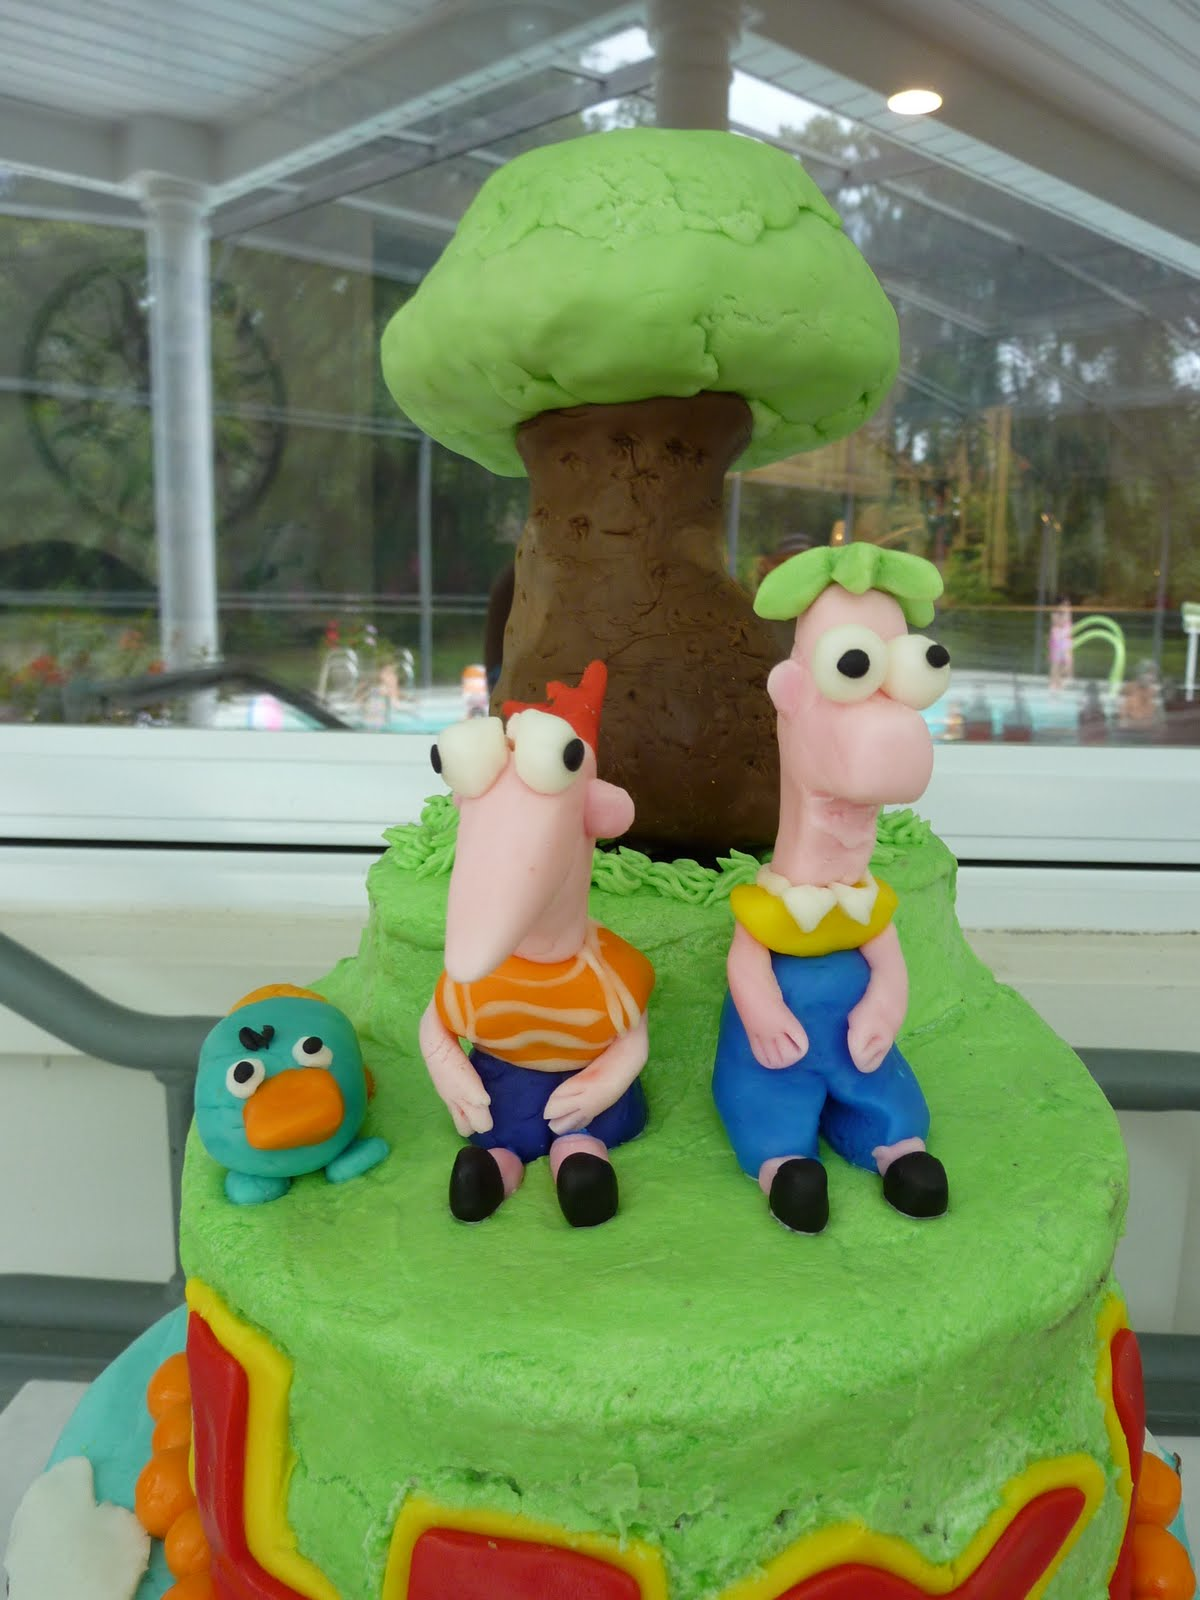 Phineas And Ferb Cake Decorations